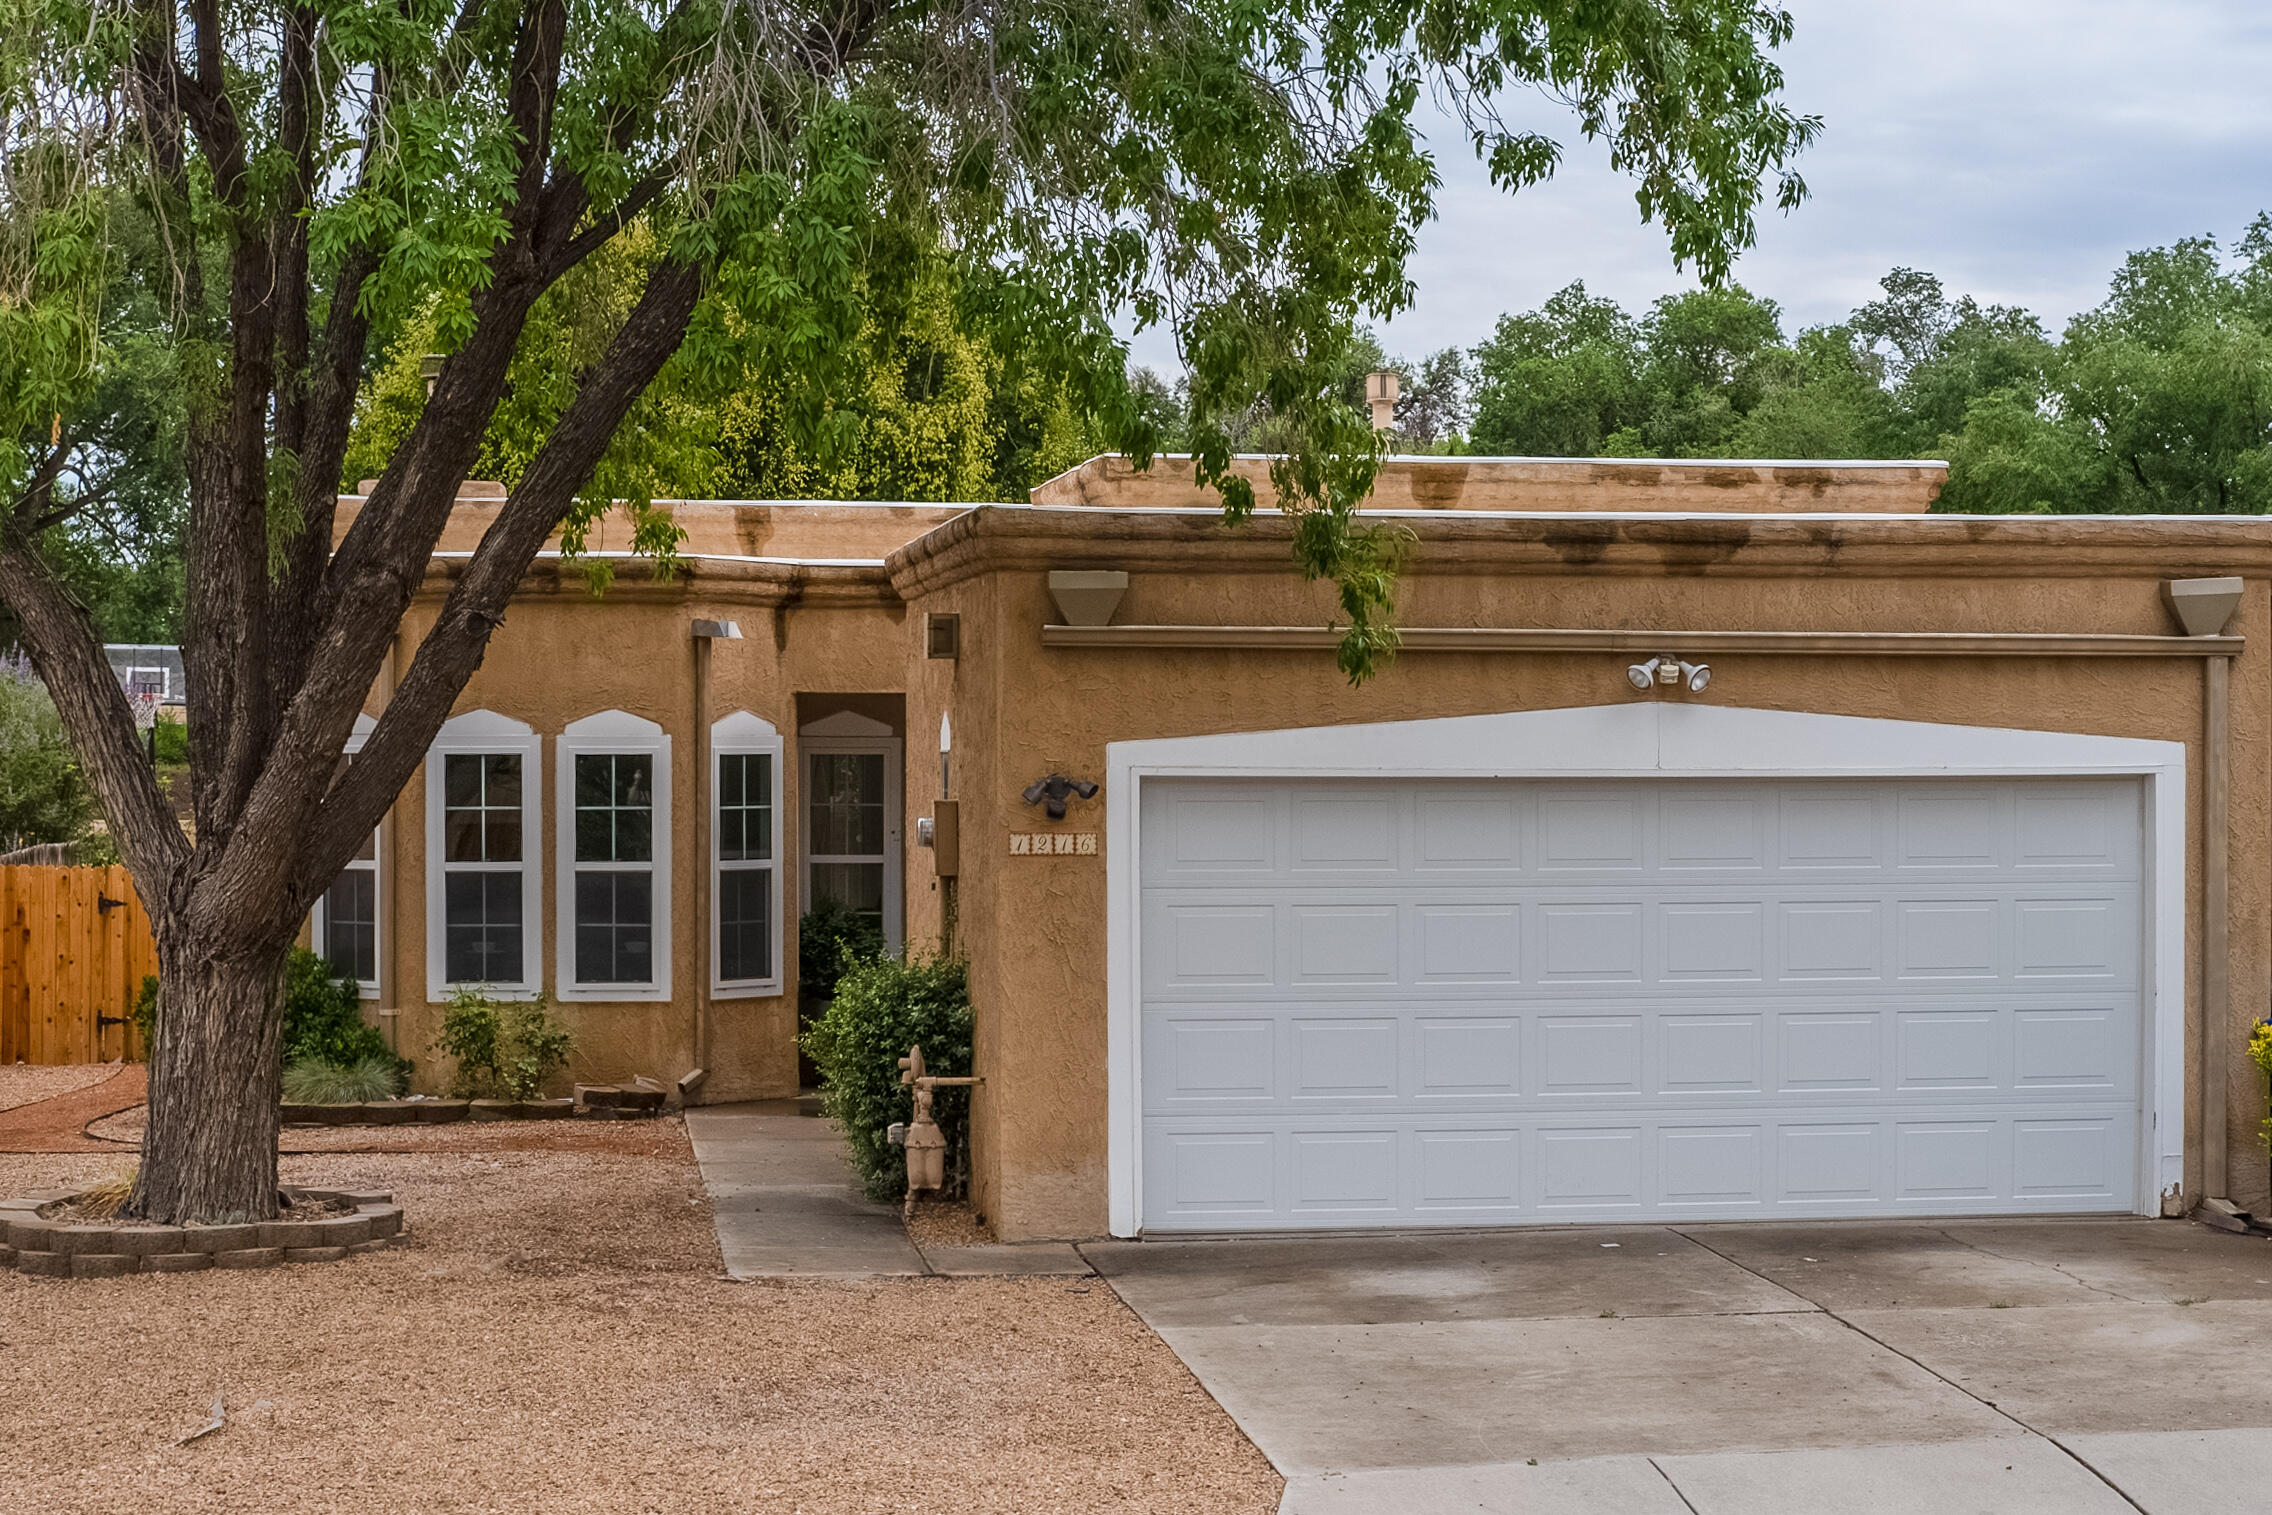 Super nice townhouse in the NW Valley.  2 large bedrooms and 2 full baths with fireplace, high ceilings, built in bookcase, with 2 car garage with built in storage.  This townhouse is ready for you to make an offer. Conveniently located to shopping and a quick drive from Old Town. Come see this today.